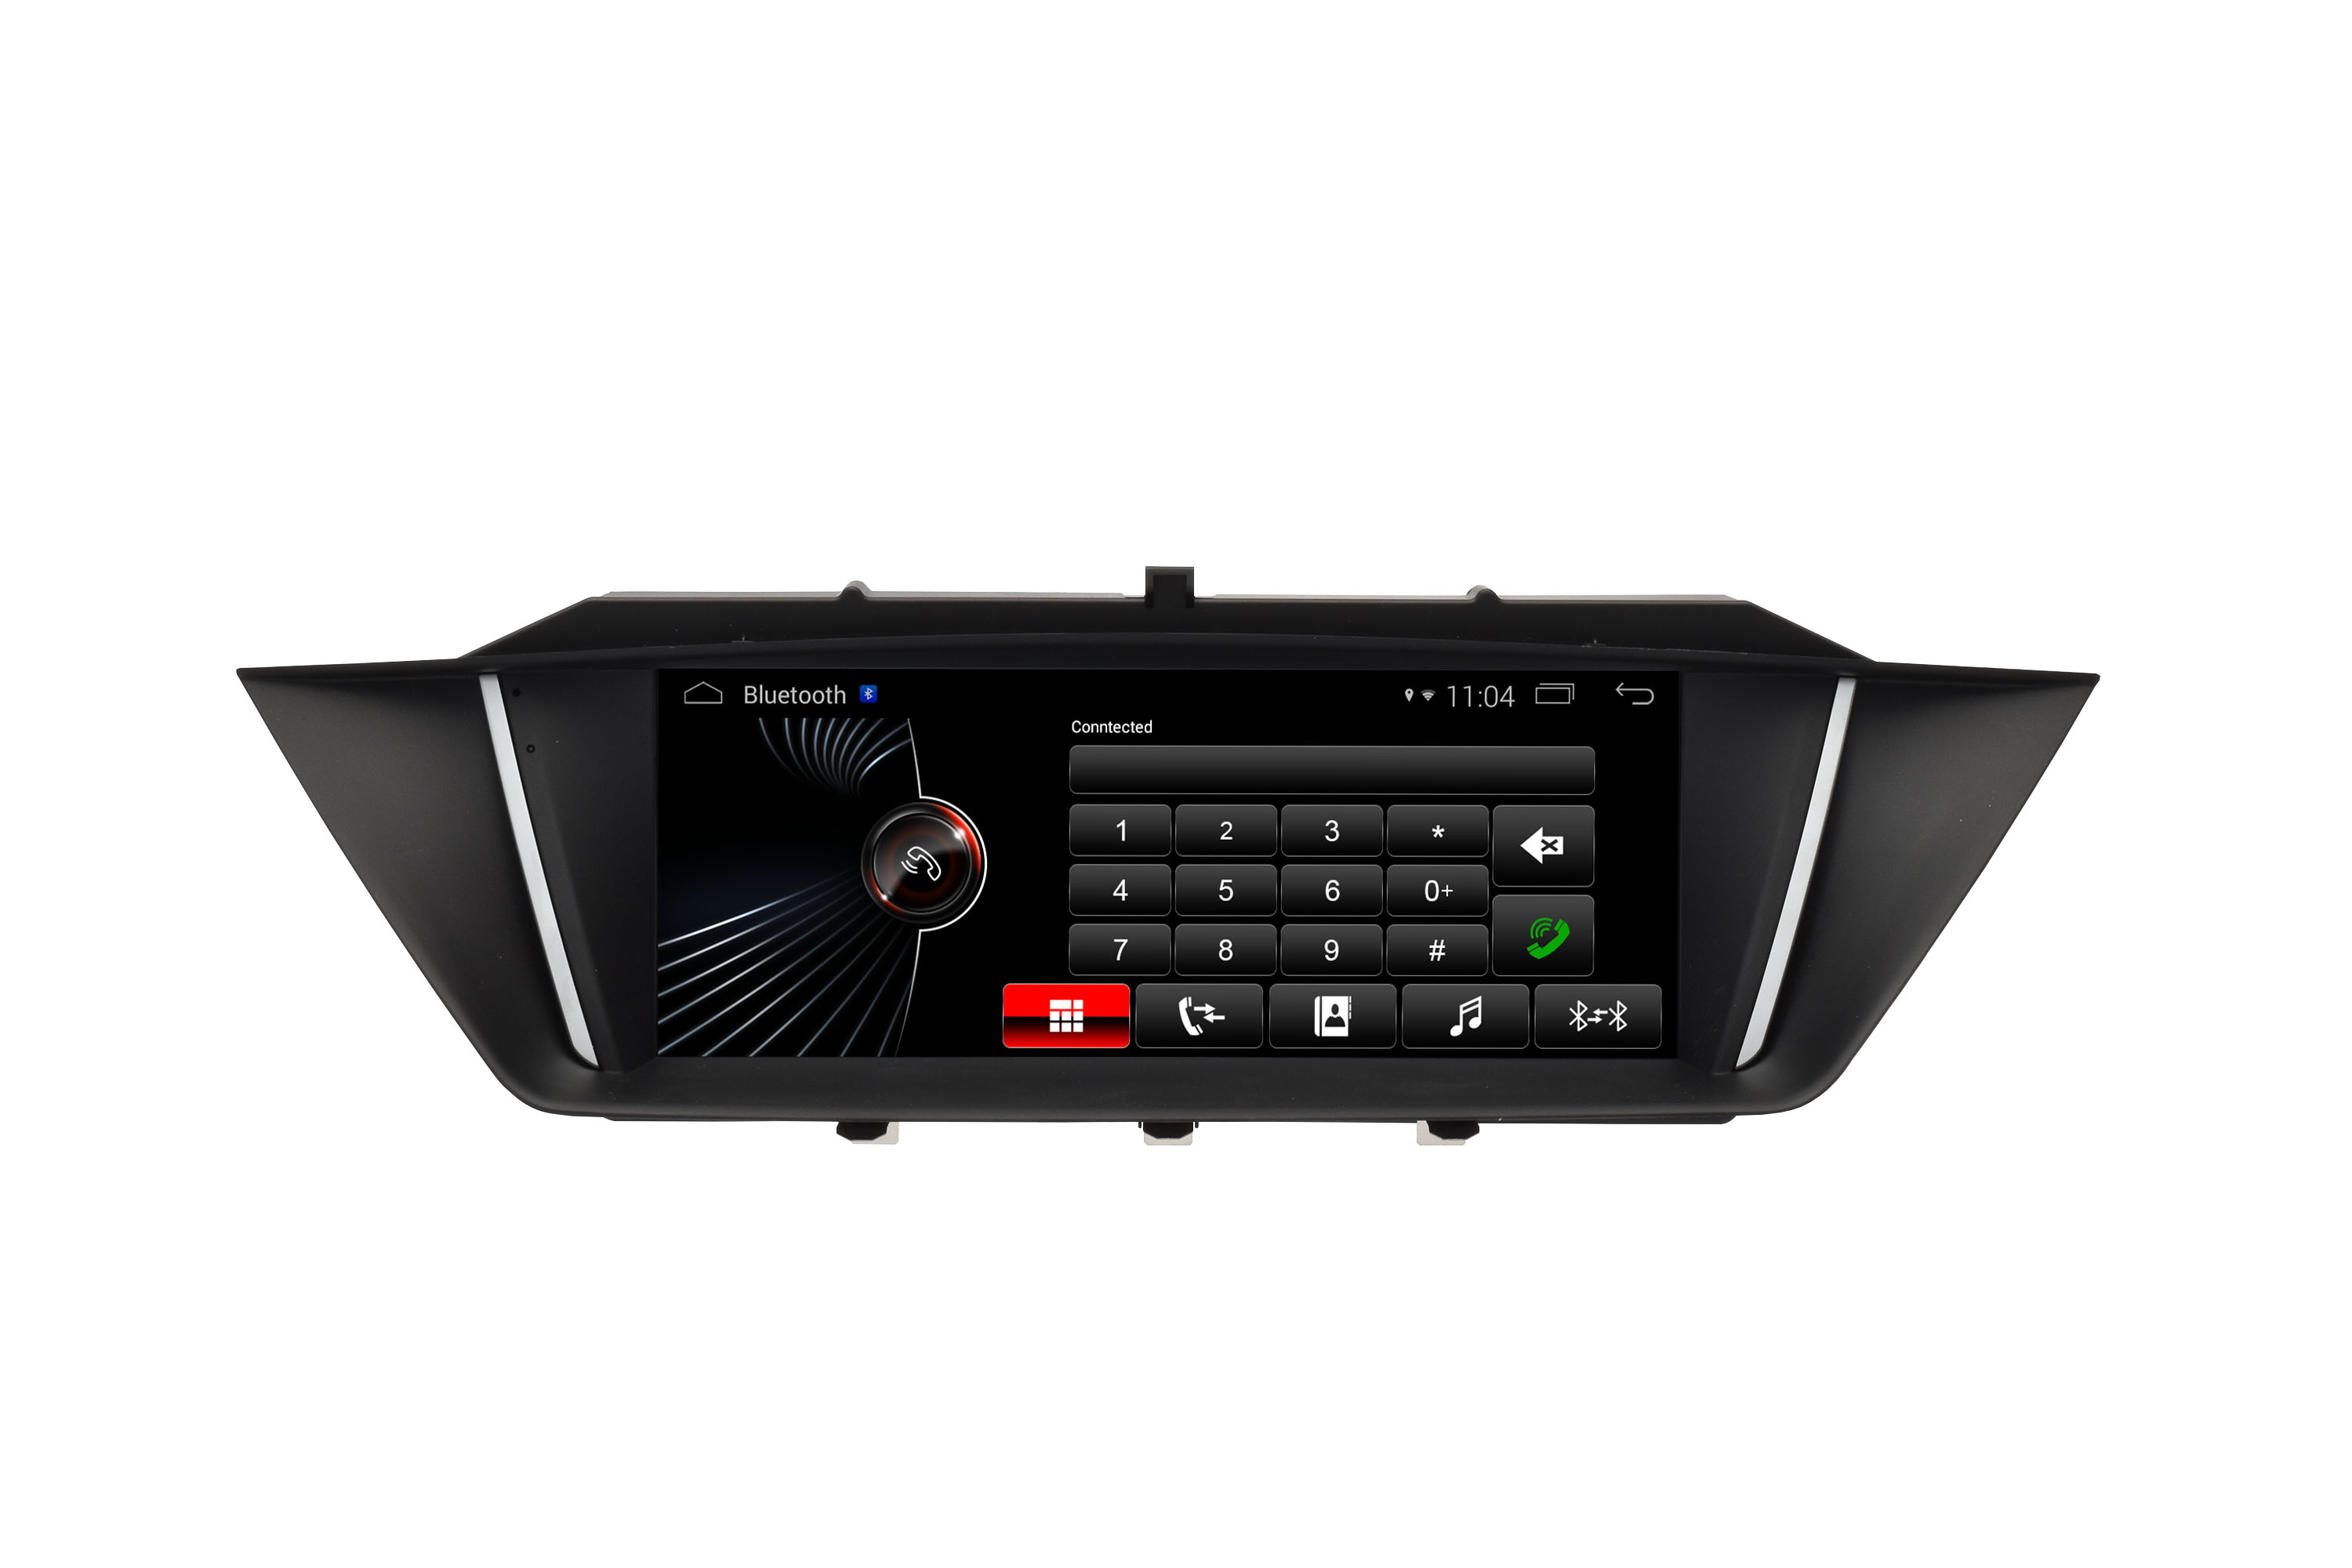 Bmw X1 E84 CCC Android 8 Car Stereo Touchscreen Multimedia System 4g Internet OBD DAB 3G GPS Navigatior